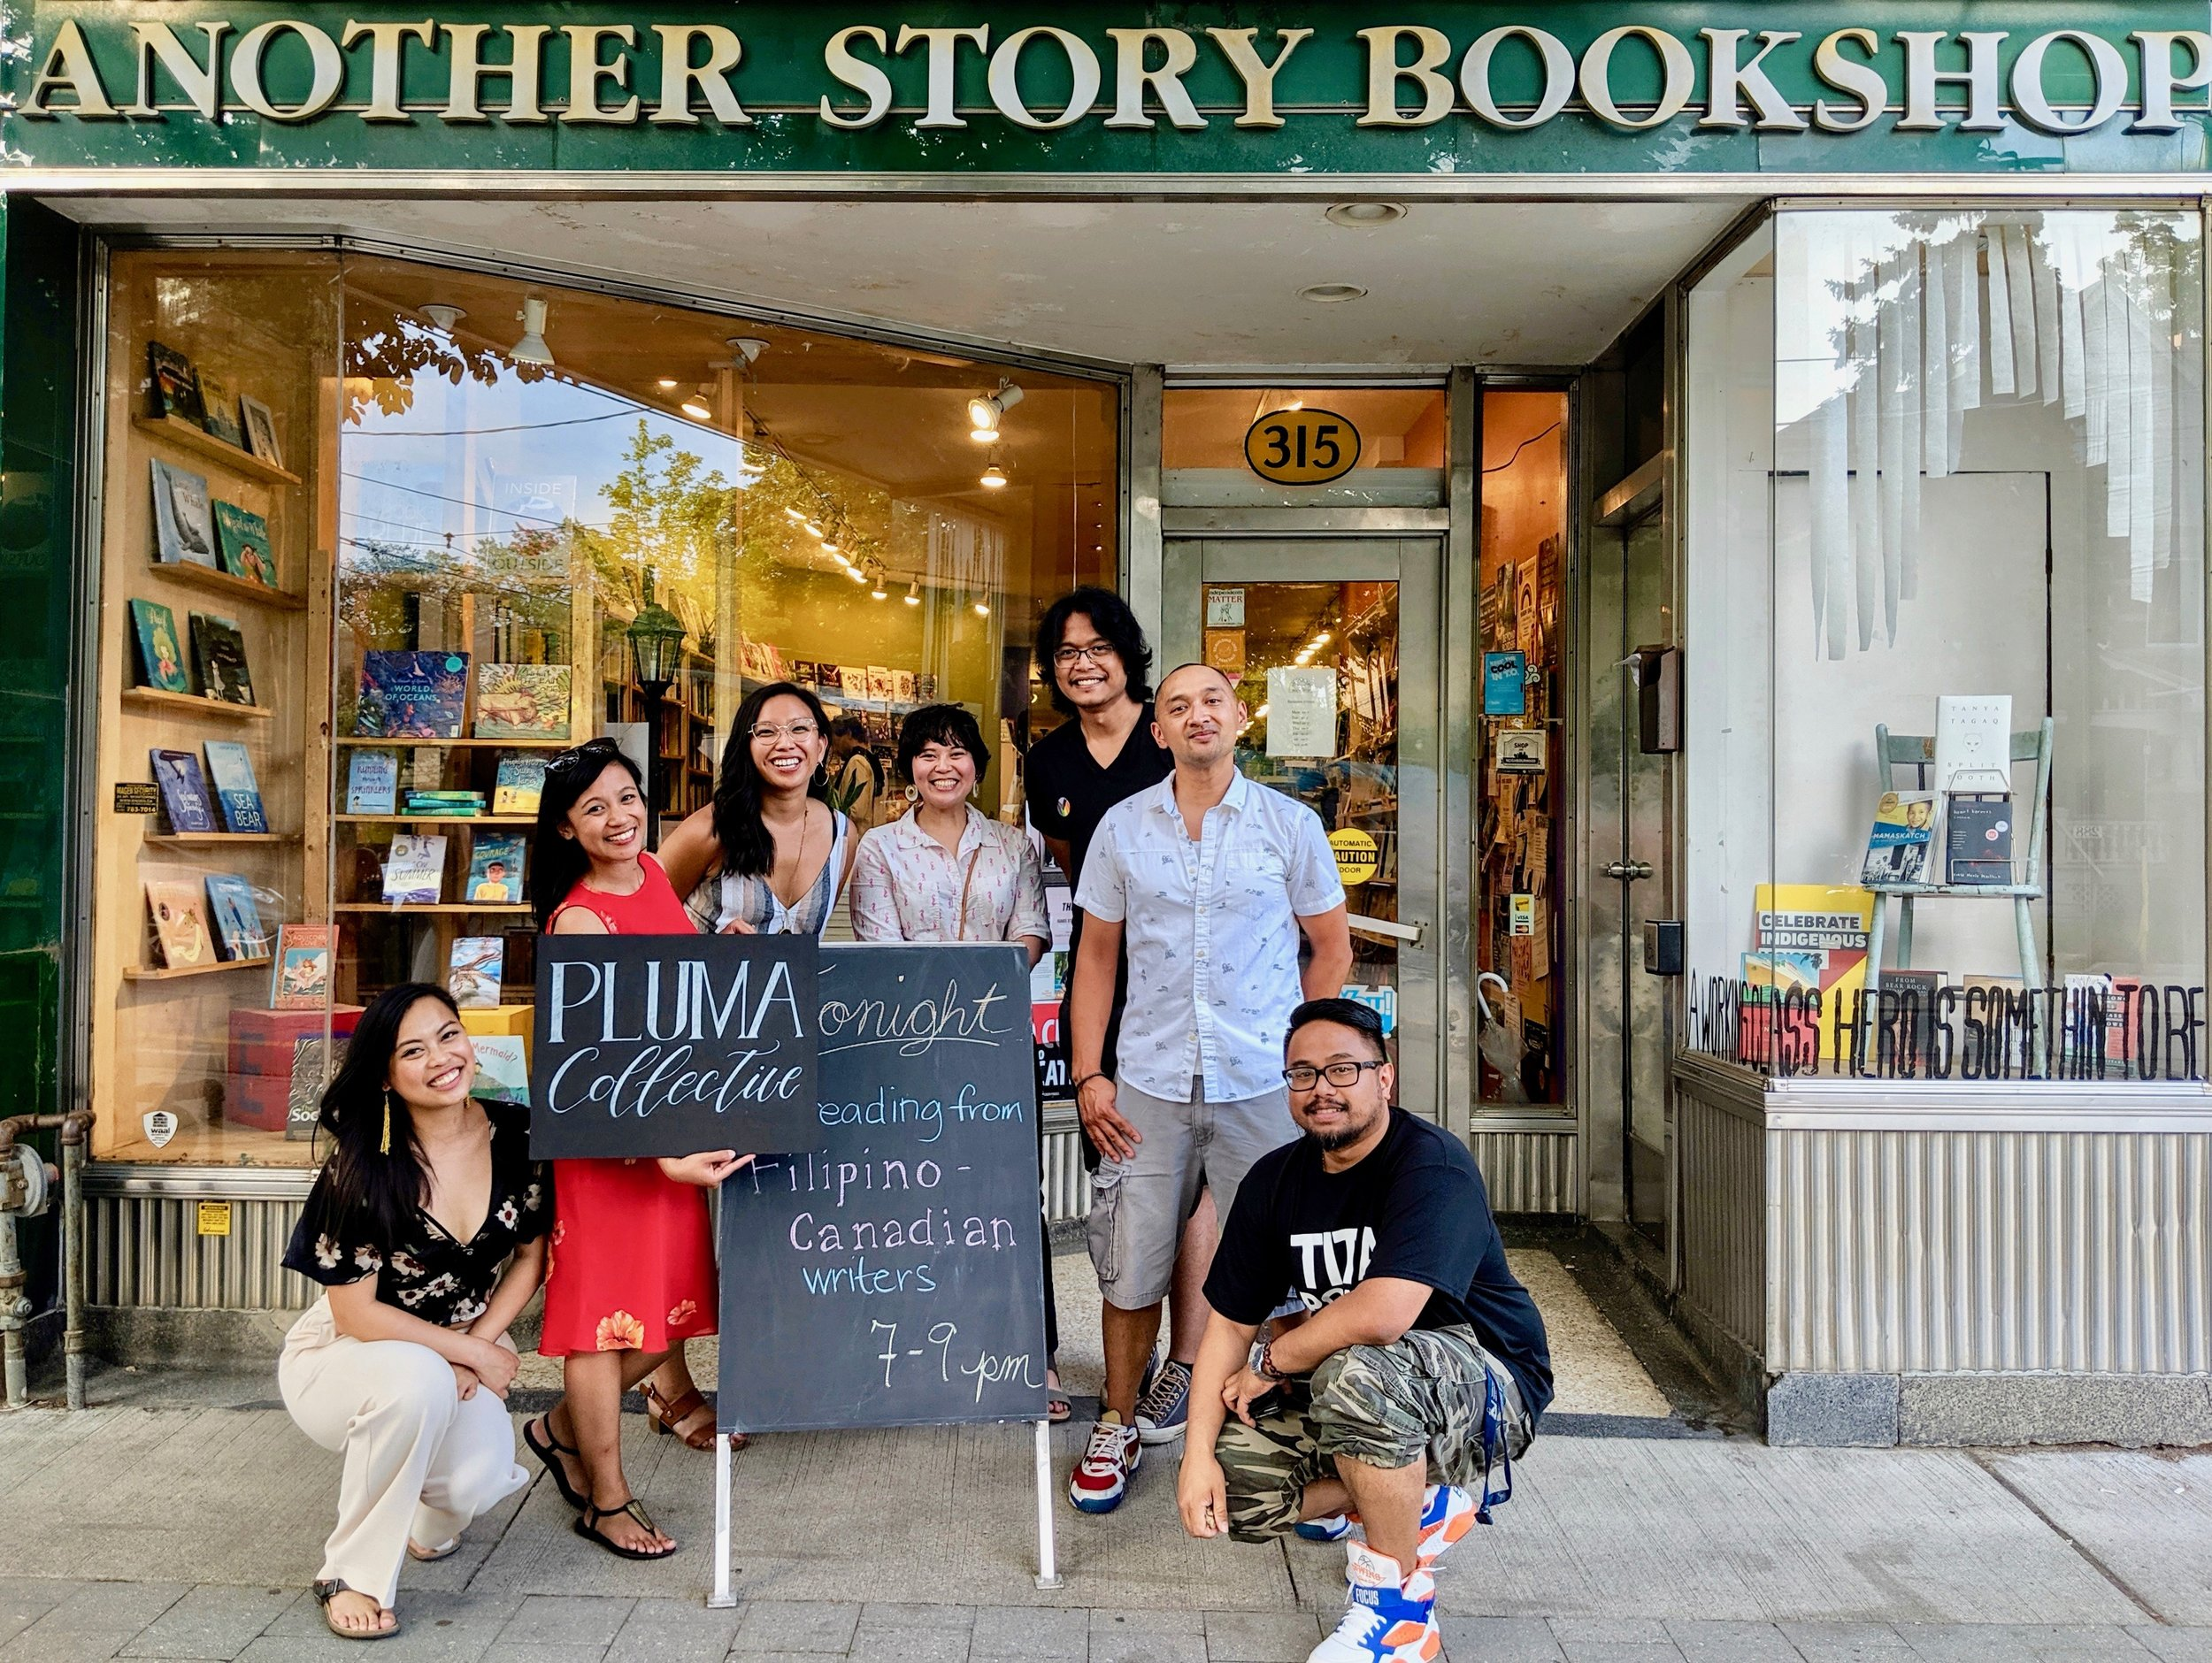 At Another Story Bookshop with members of Pluma, a collective of Filipino-Canadian writers. From L-R: Maria Patricia Abuel, Jennilee Austria, Justine Abigail Yu, Nastasha Alli, ML Gamboa, Yves Lamson, and Eric Tigley. Photo by Jovie Galit.